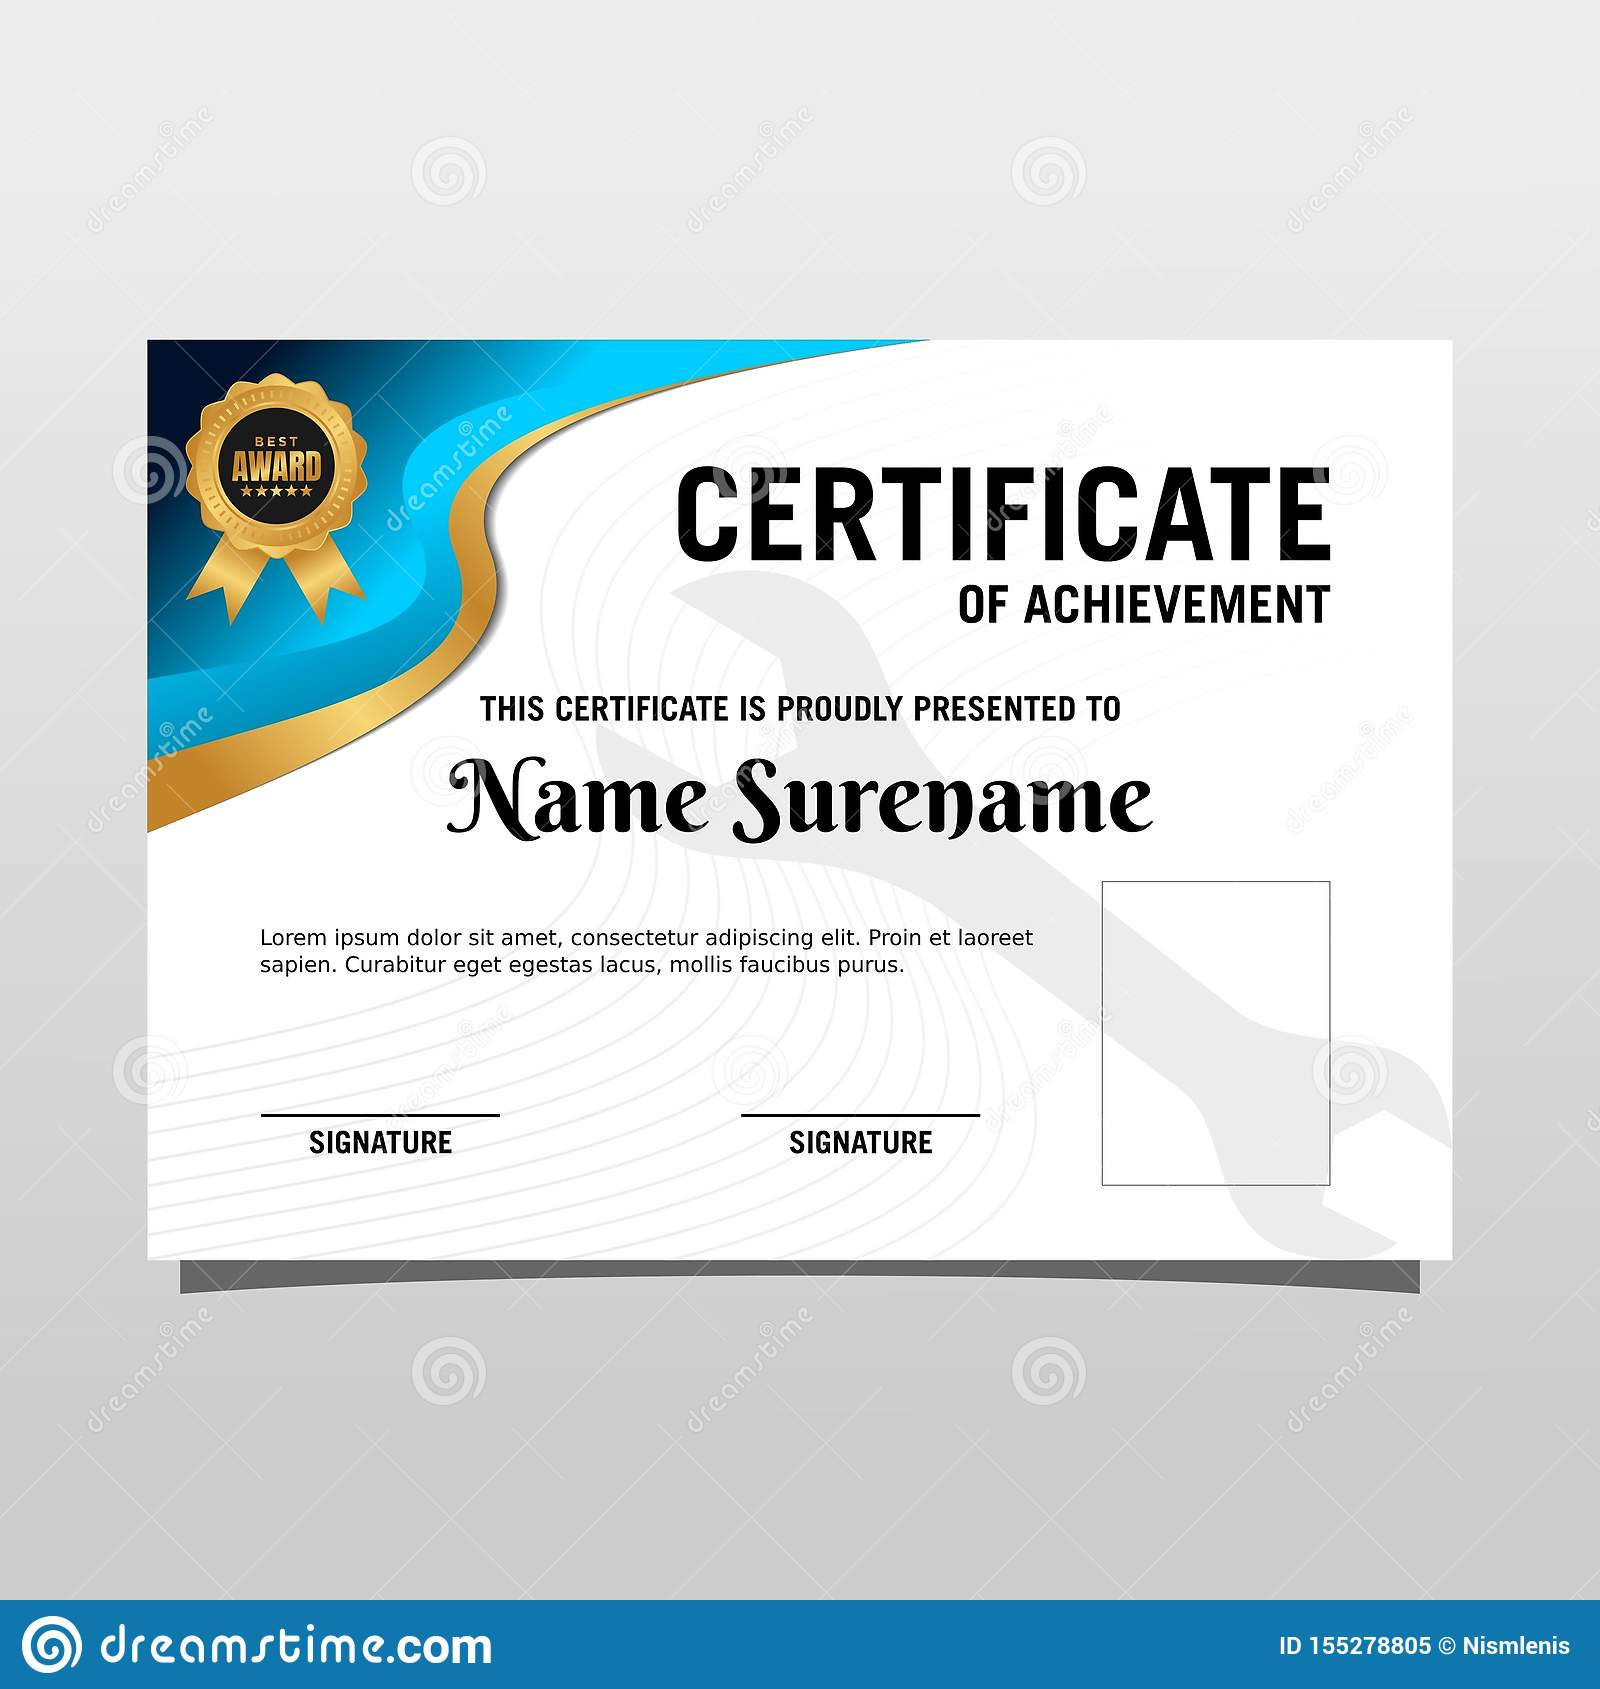 Creative Certificate Of Appreciation Award Template With Luxury And Modern Pattern Vector Illustration Stock Vector Illustration Of Construction Application 155278805